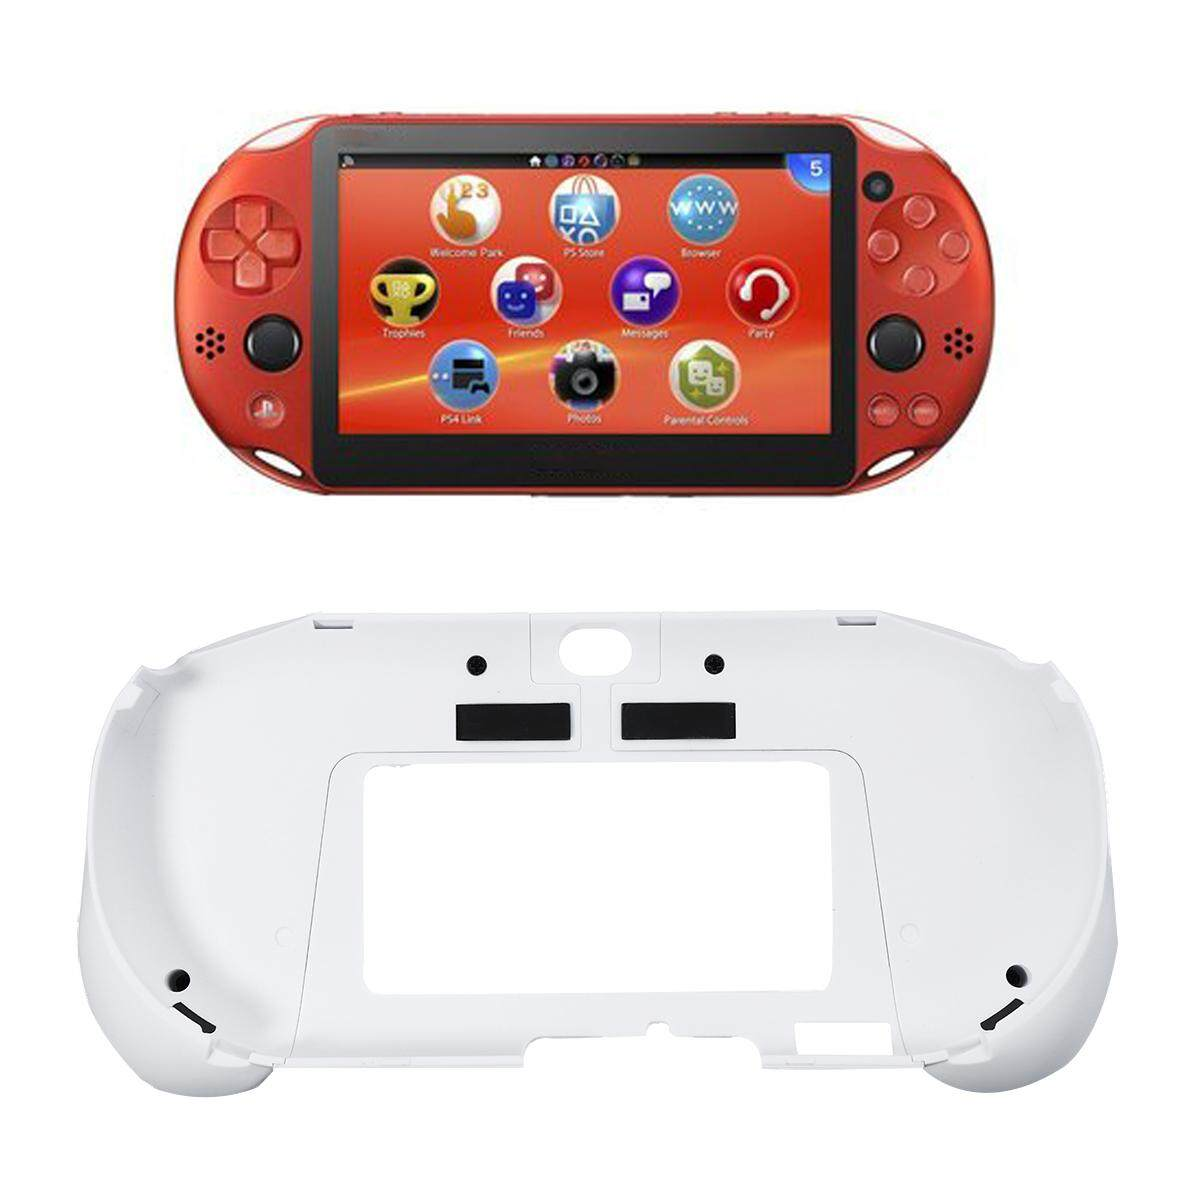 Upgrade L2 R2 Handle Grip Case Cover Protector Trigger Holder for PS Vita 1000 White - intl